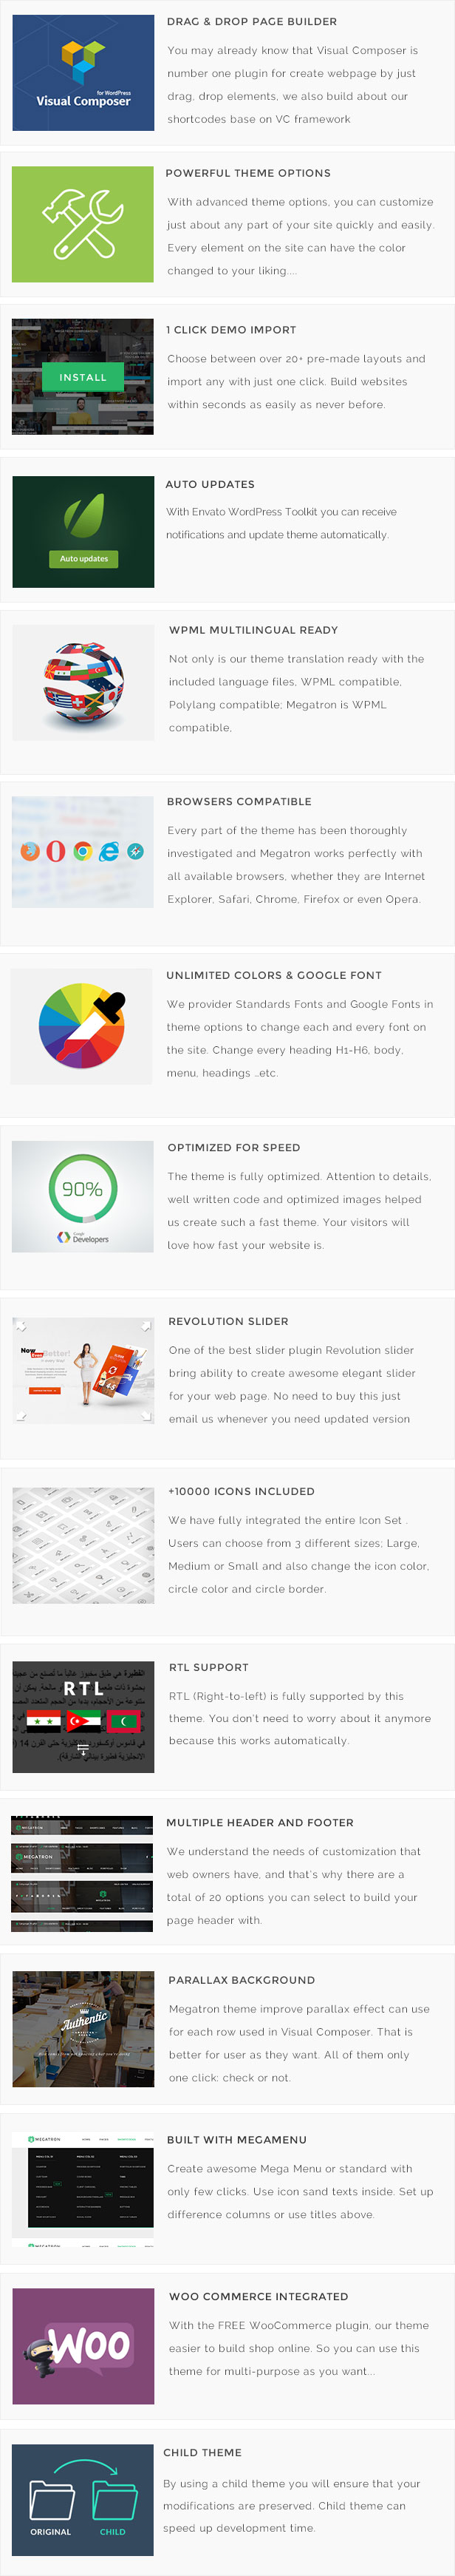 Megatron - Responsive MultiPurpose WordPress Theme - 6